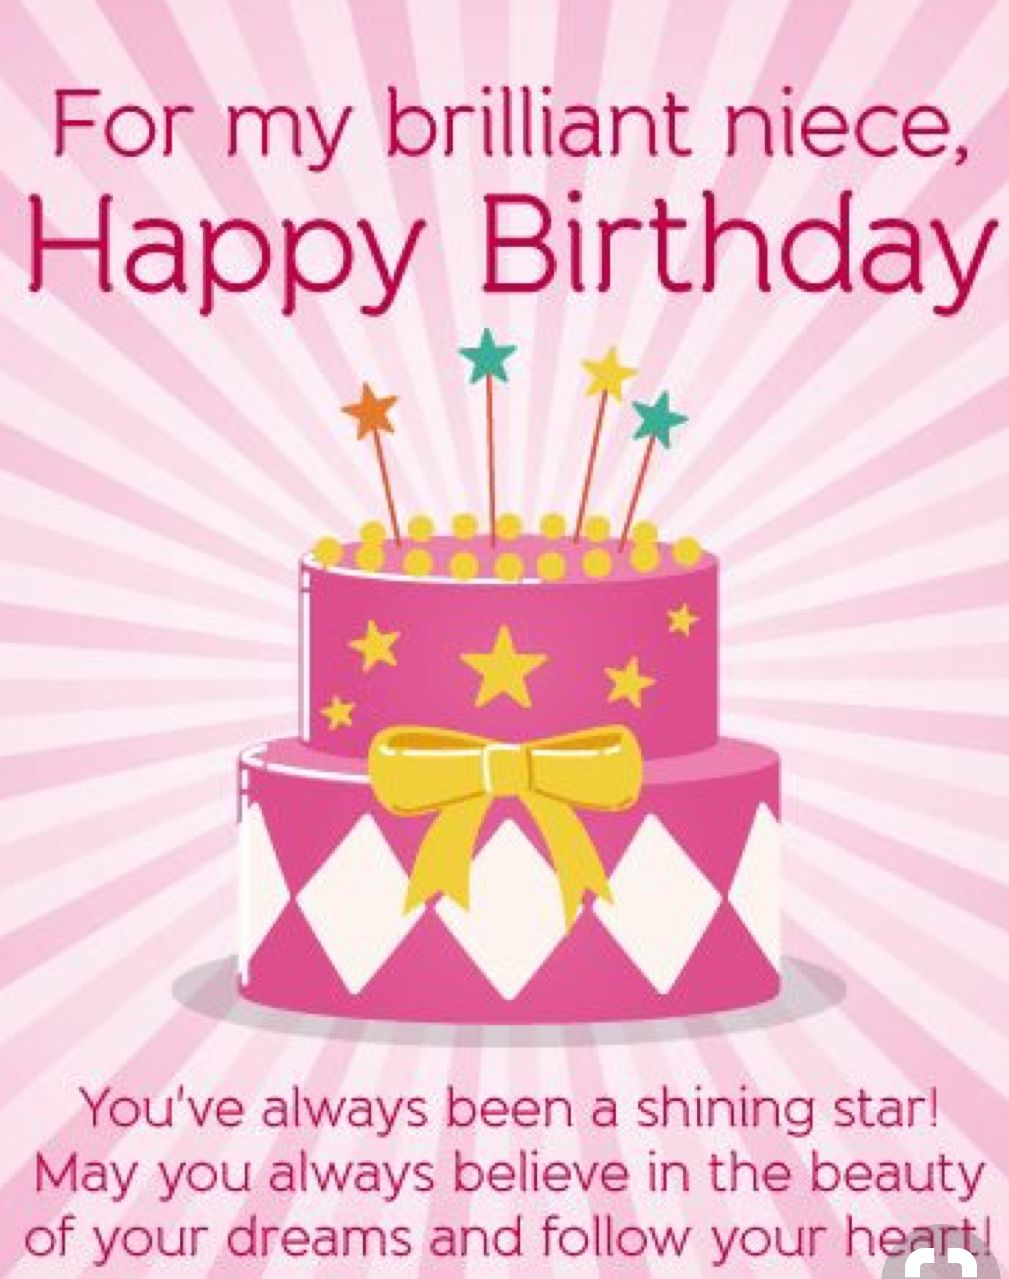 Pin By Dympna Reidy On Niece Birthday Pinterest Birthday Wishes